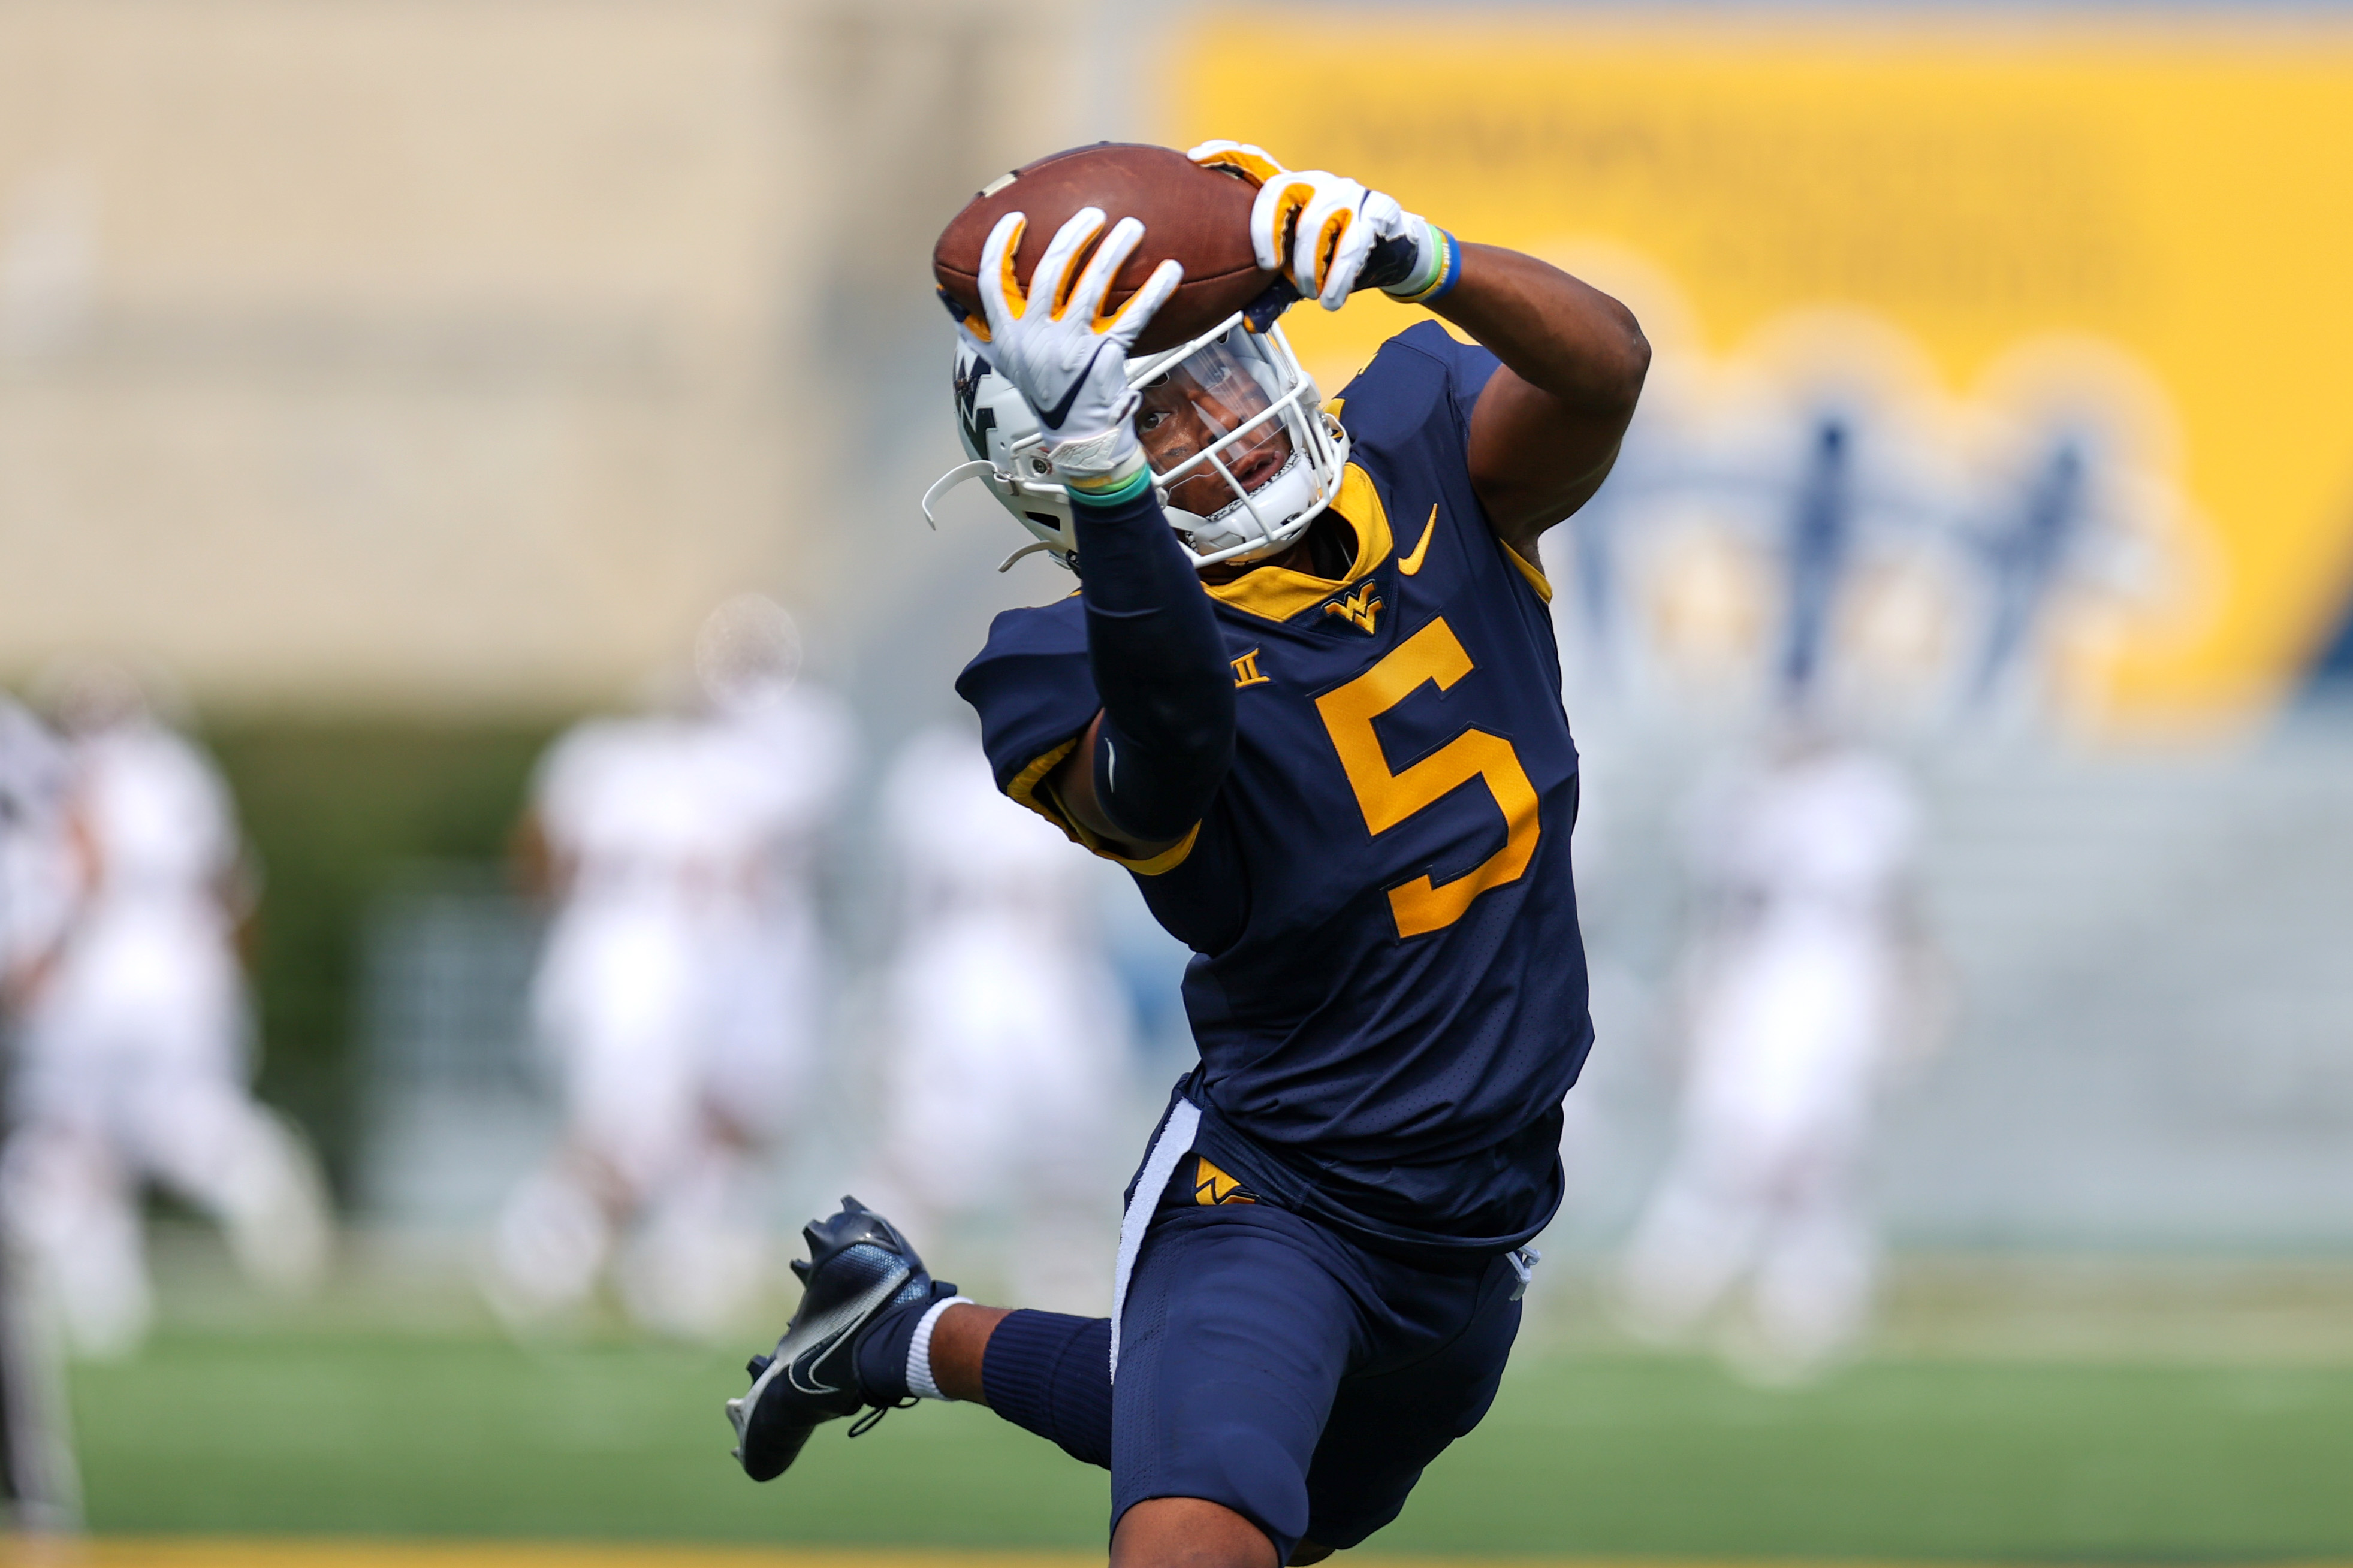 COLLEGE FOOTBALL: SEP 12 Eastern Kentucky at West Virginia